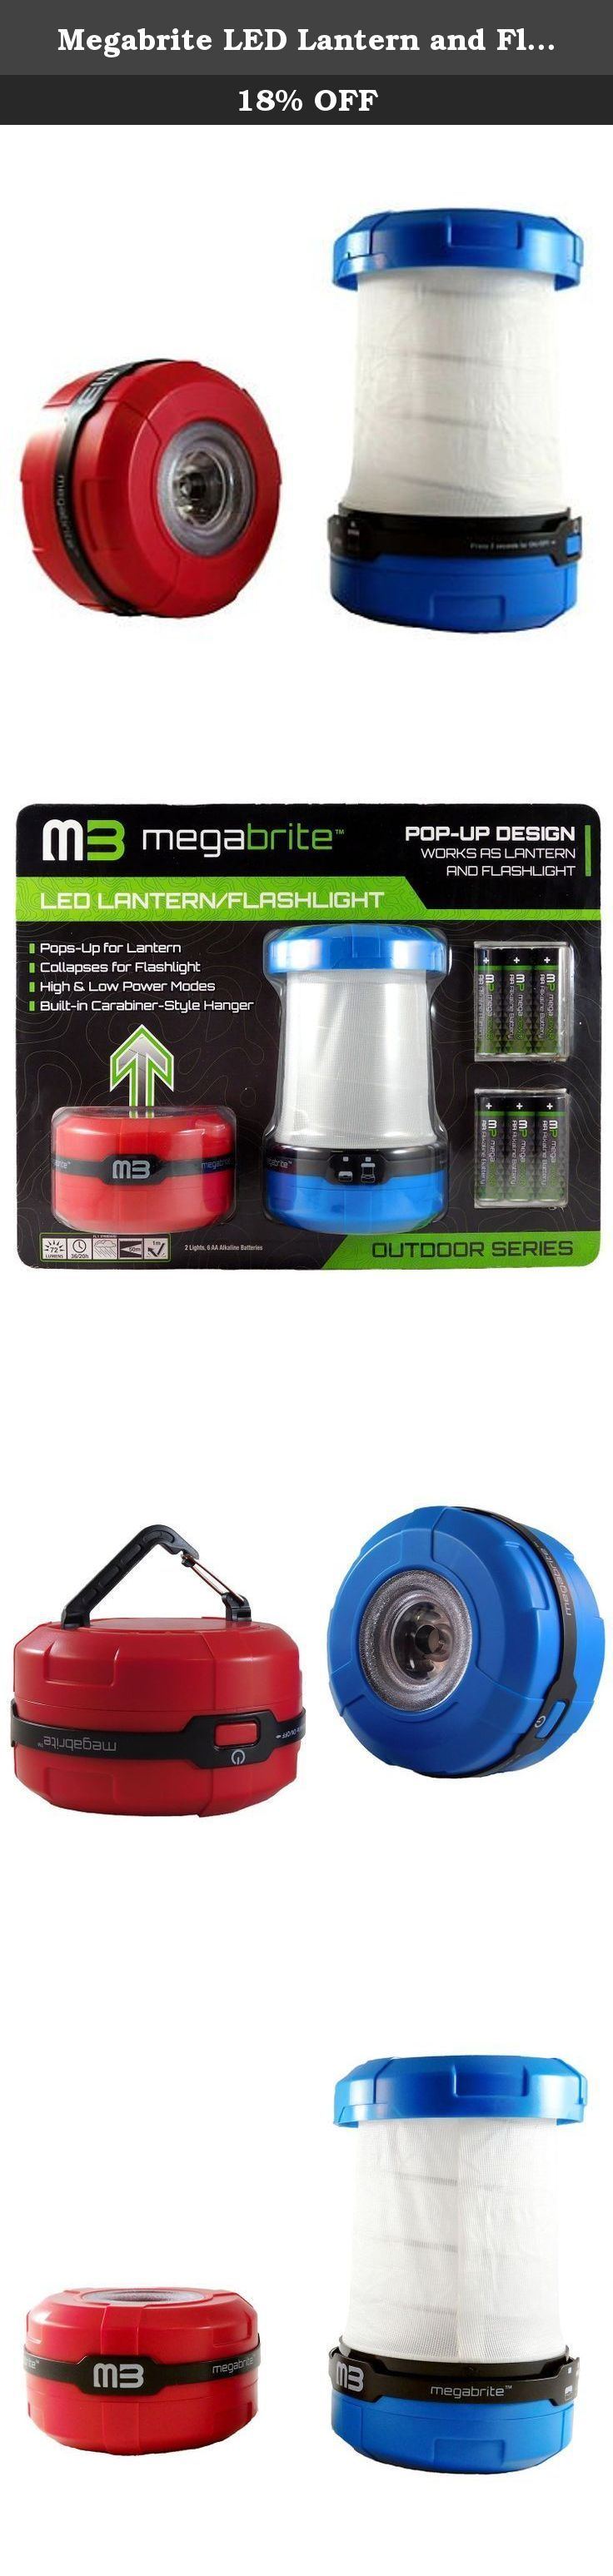 Megabrite LED Lantern and Flashlight with batteries (4 pack). The Megabrite LED Lantern and Flashlight is the ideal all in one portable lighting solution. With two functions, a bright 72 lumen LED light, and a host of other features, this light will be ideal for the great outdoors. The Megabrite LED Lantern and Flashlight will also be ideal for household applications like storm readiness. The light comes with batteries, so you will not have to go searching for batteries when you need them...